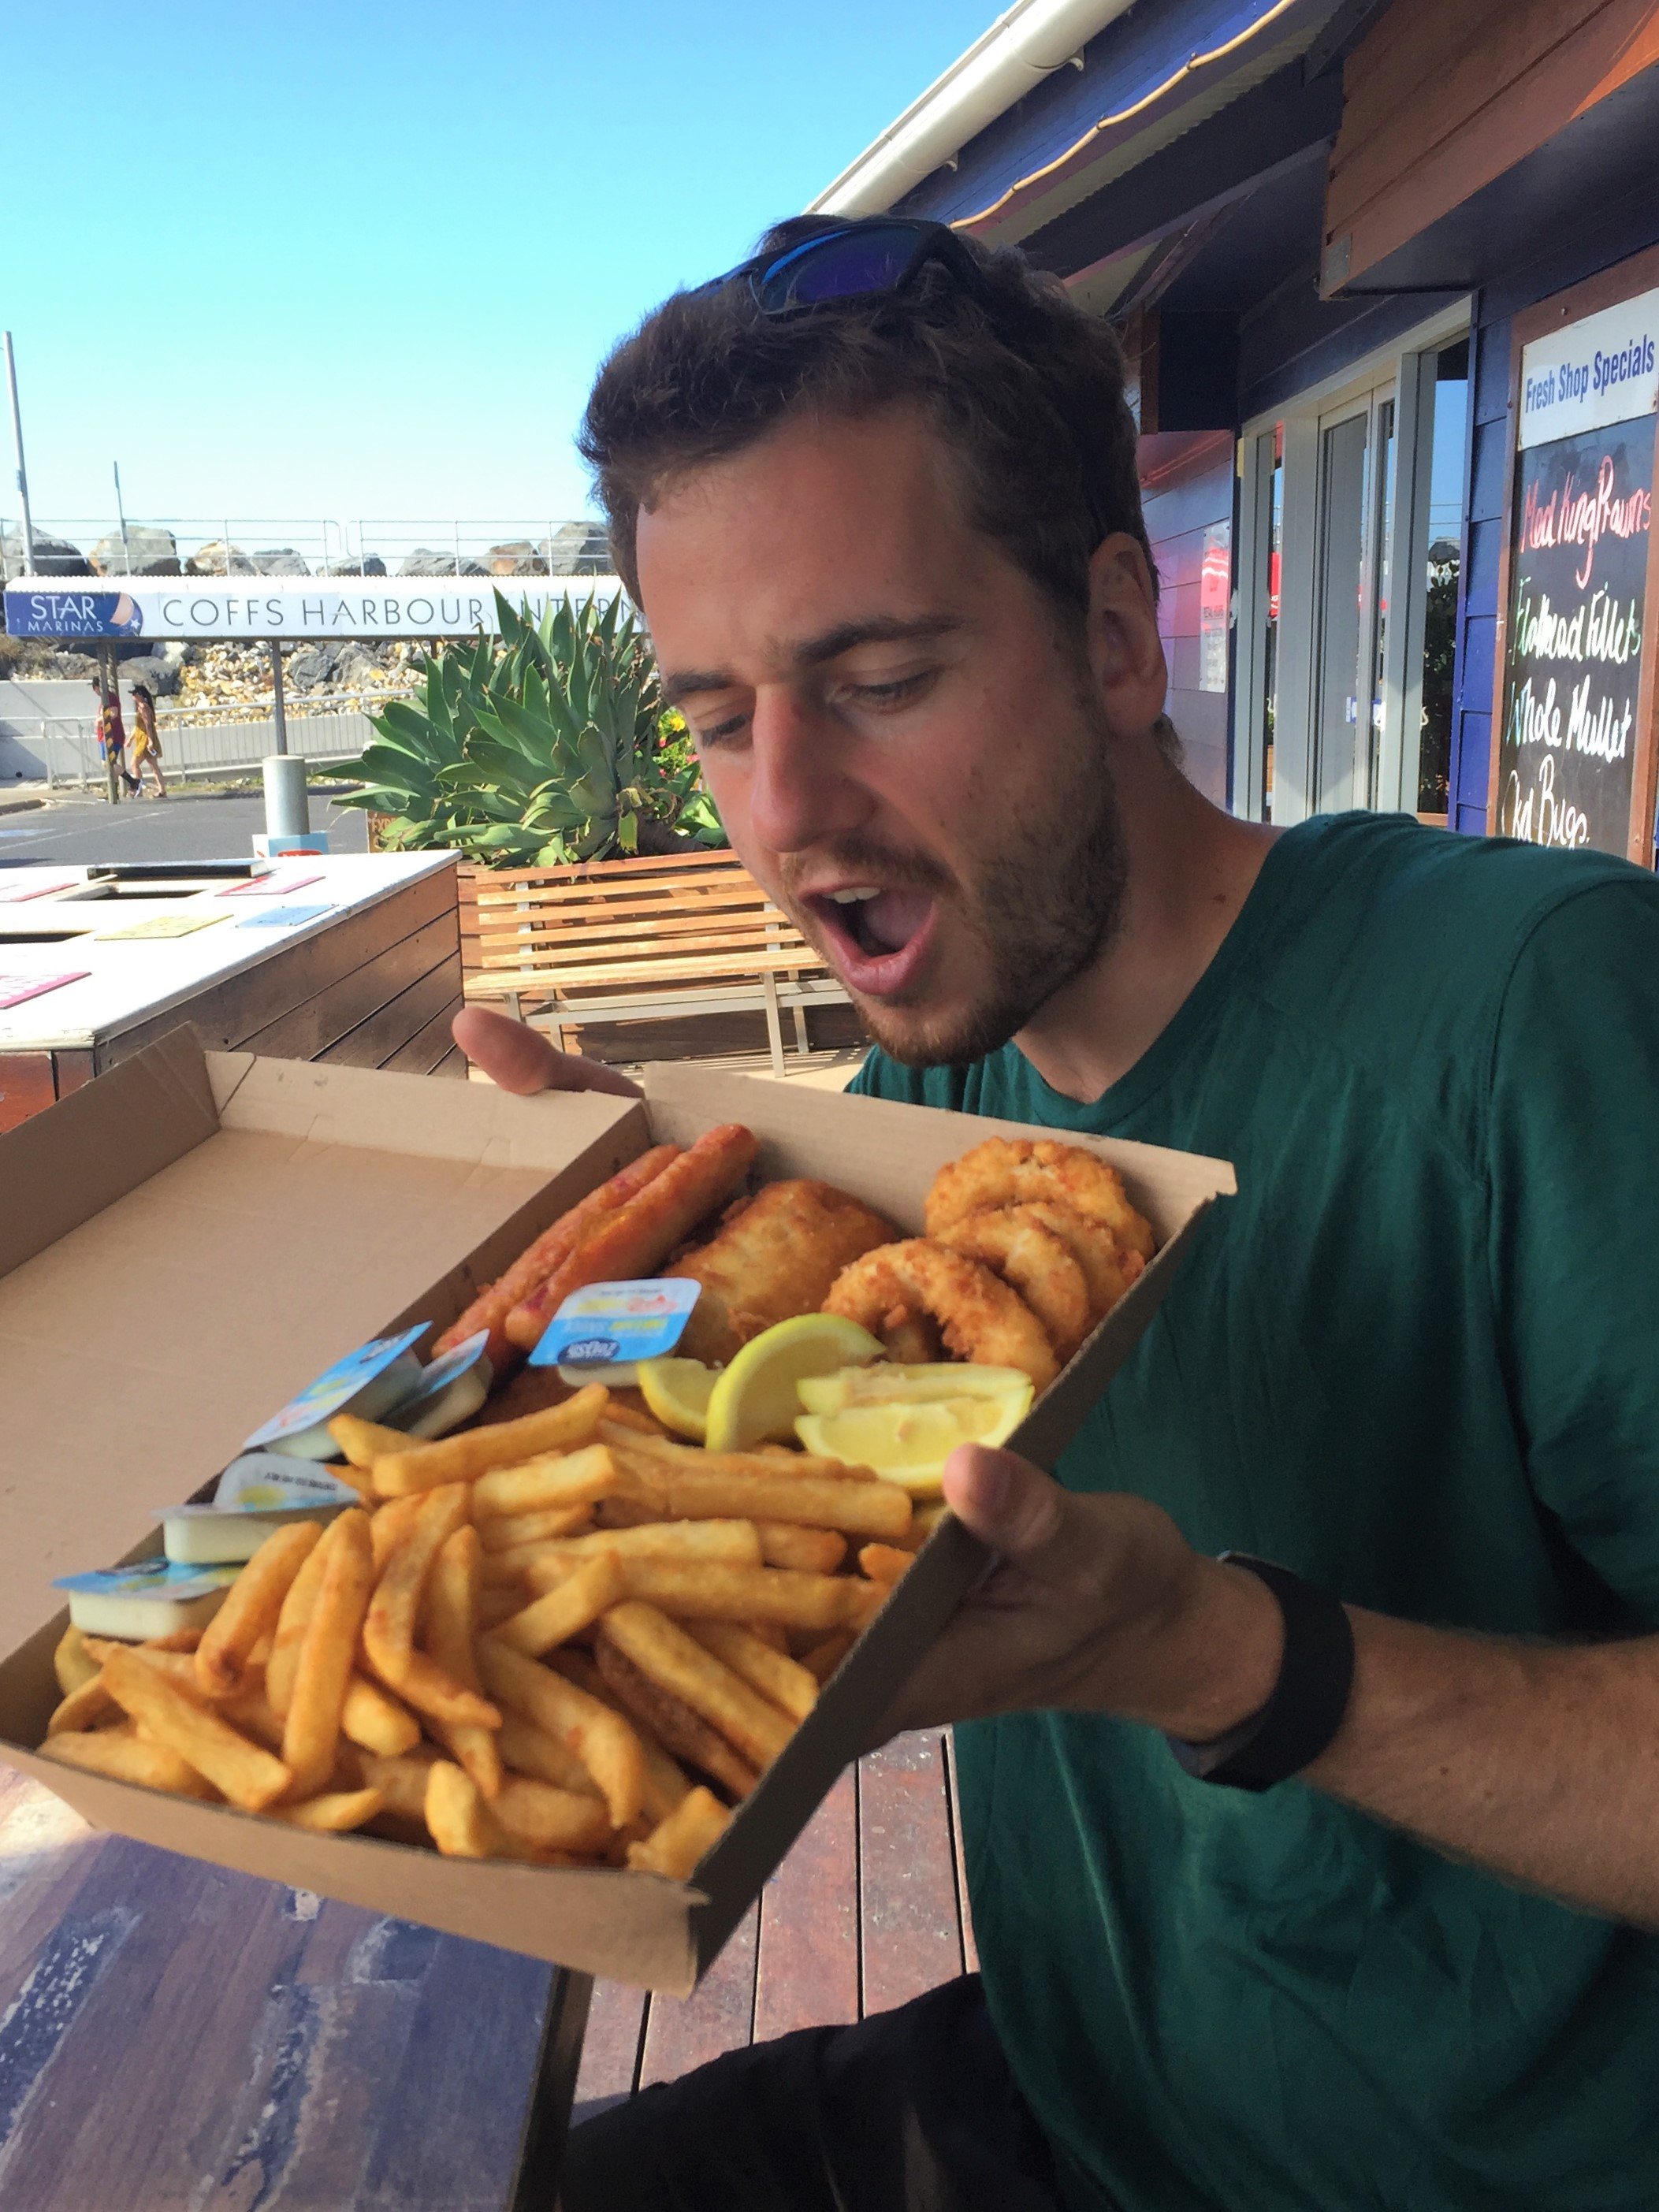 Coffs Harbour – Fish and Chips – 12 janvier 2019 (Camille) (3)